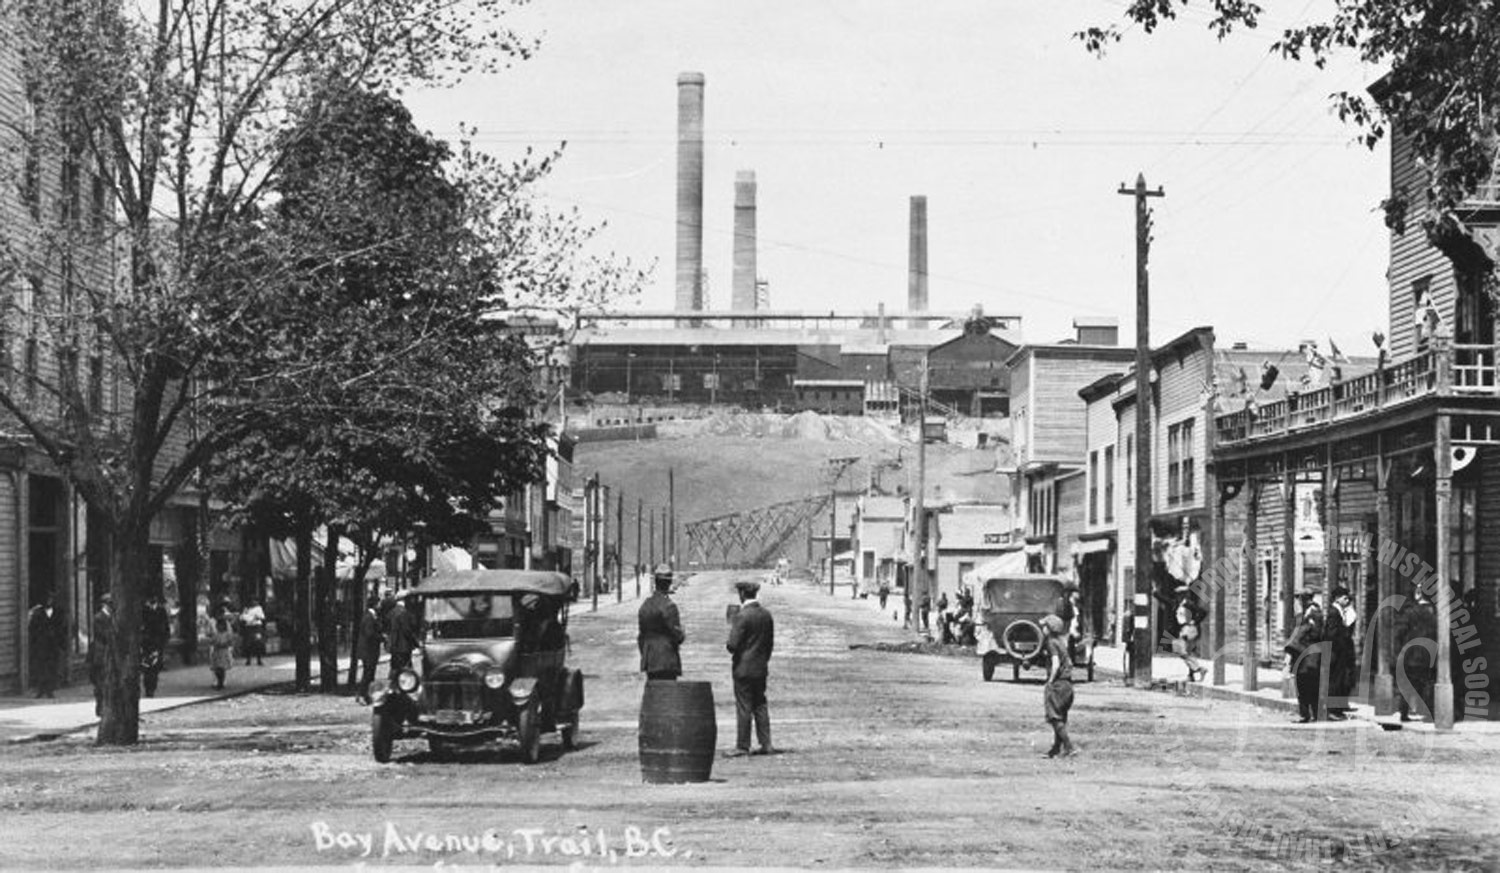 Cars on Bay Avenue, from Spokane Street looking north (Hughes) - 1924